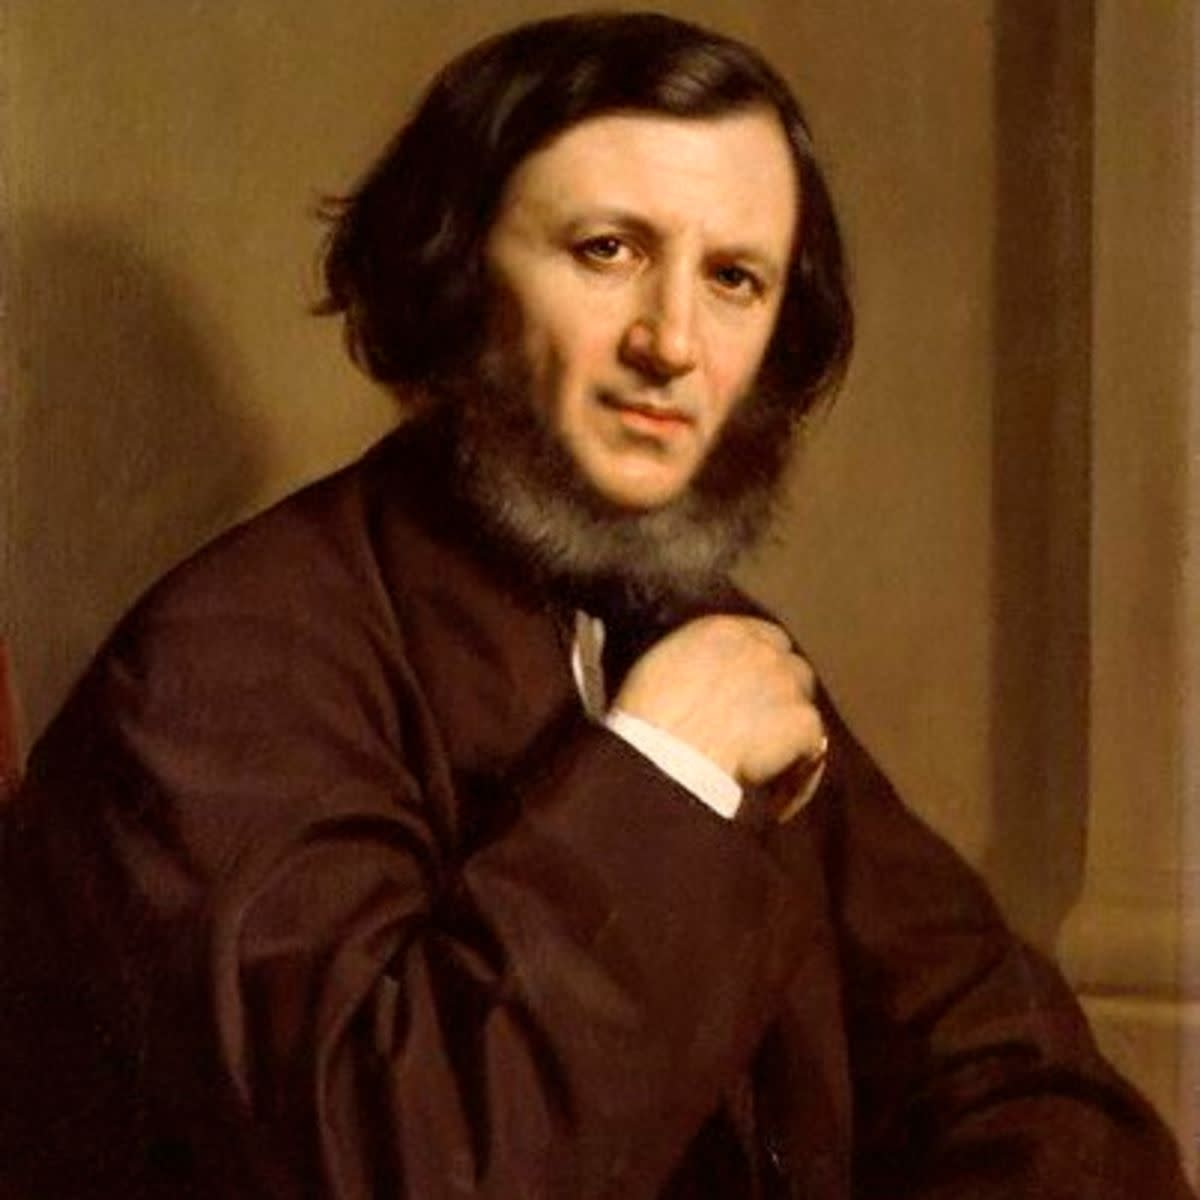 significance of narrators robert browning f Study poem - my last duchess flashcards from dan price's kimbolton school class online, or in brainscape's iphone or android app ✓ learn faster with spaced repetition.